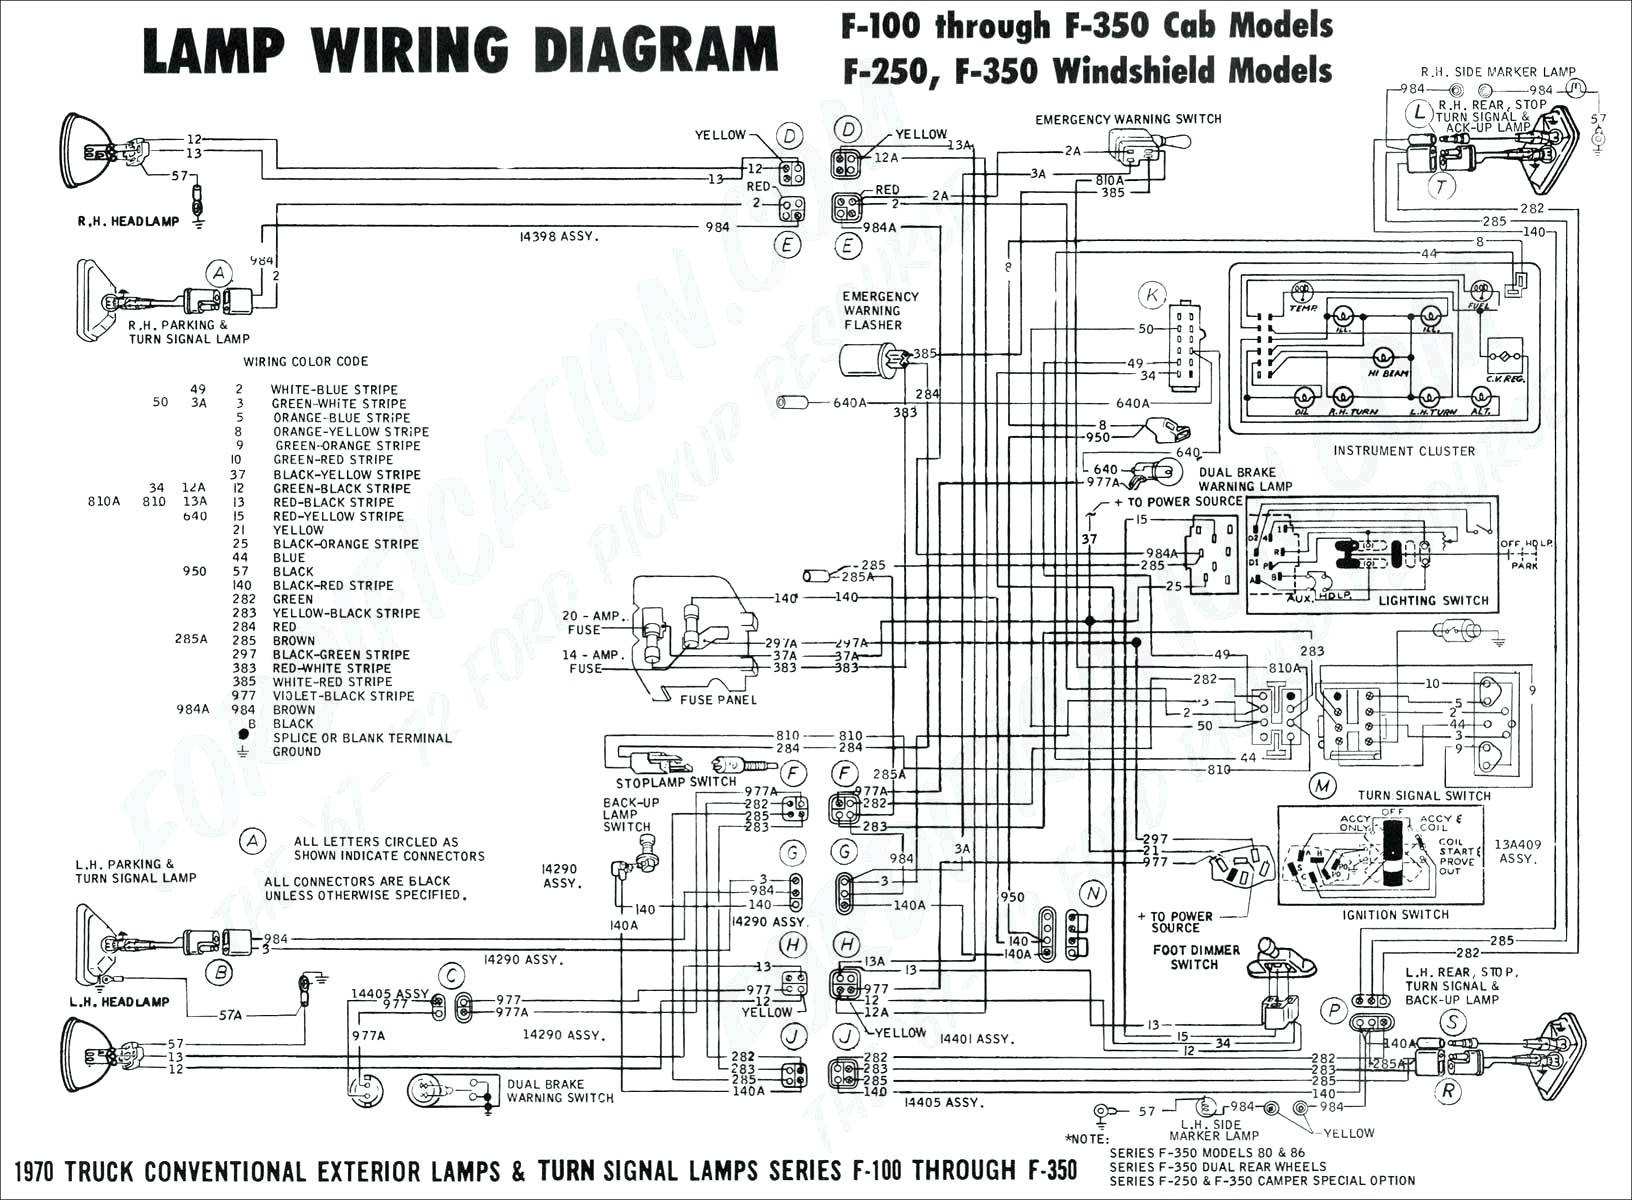 Get 2001 Ford F250 Trailer Wiring Diagram Sample - Ford F250 Trailer Wiring Diagram